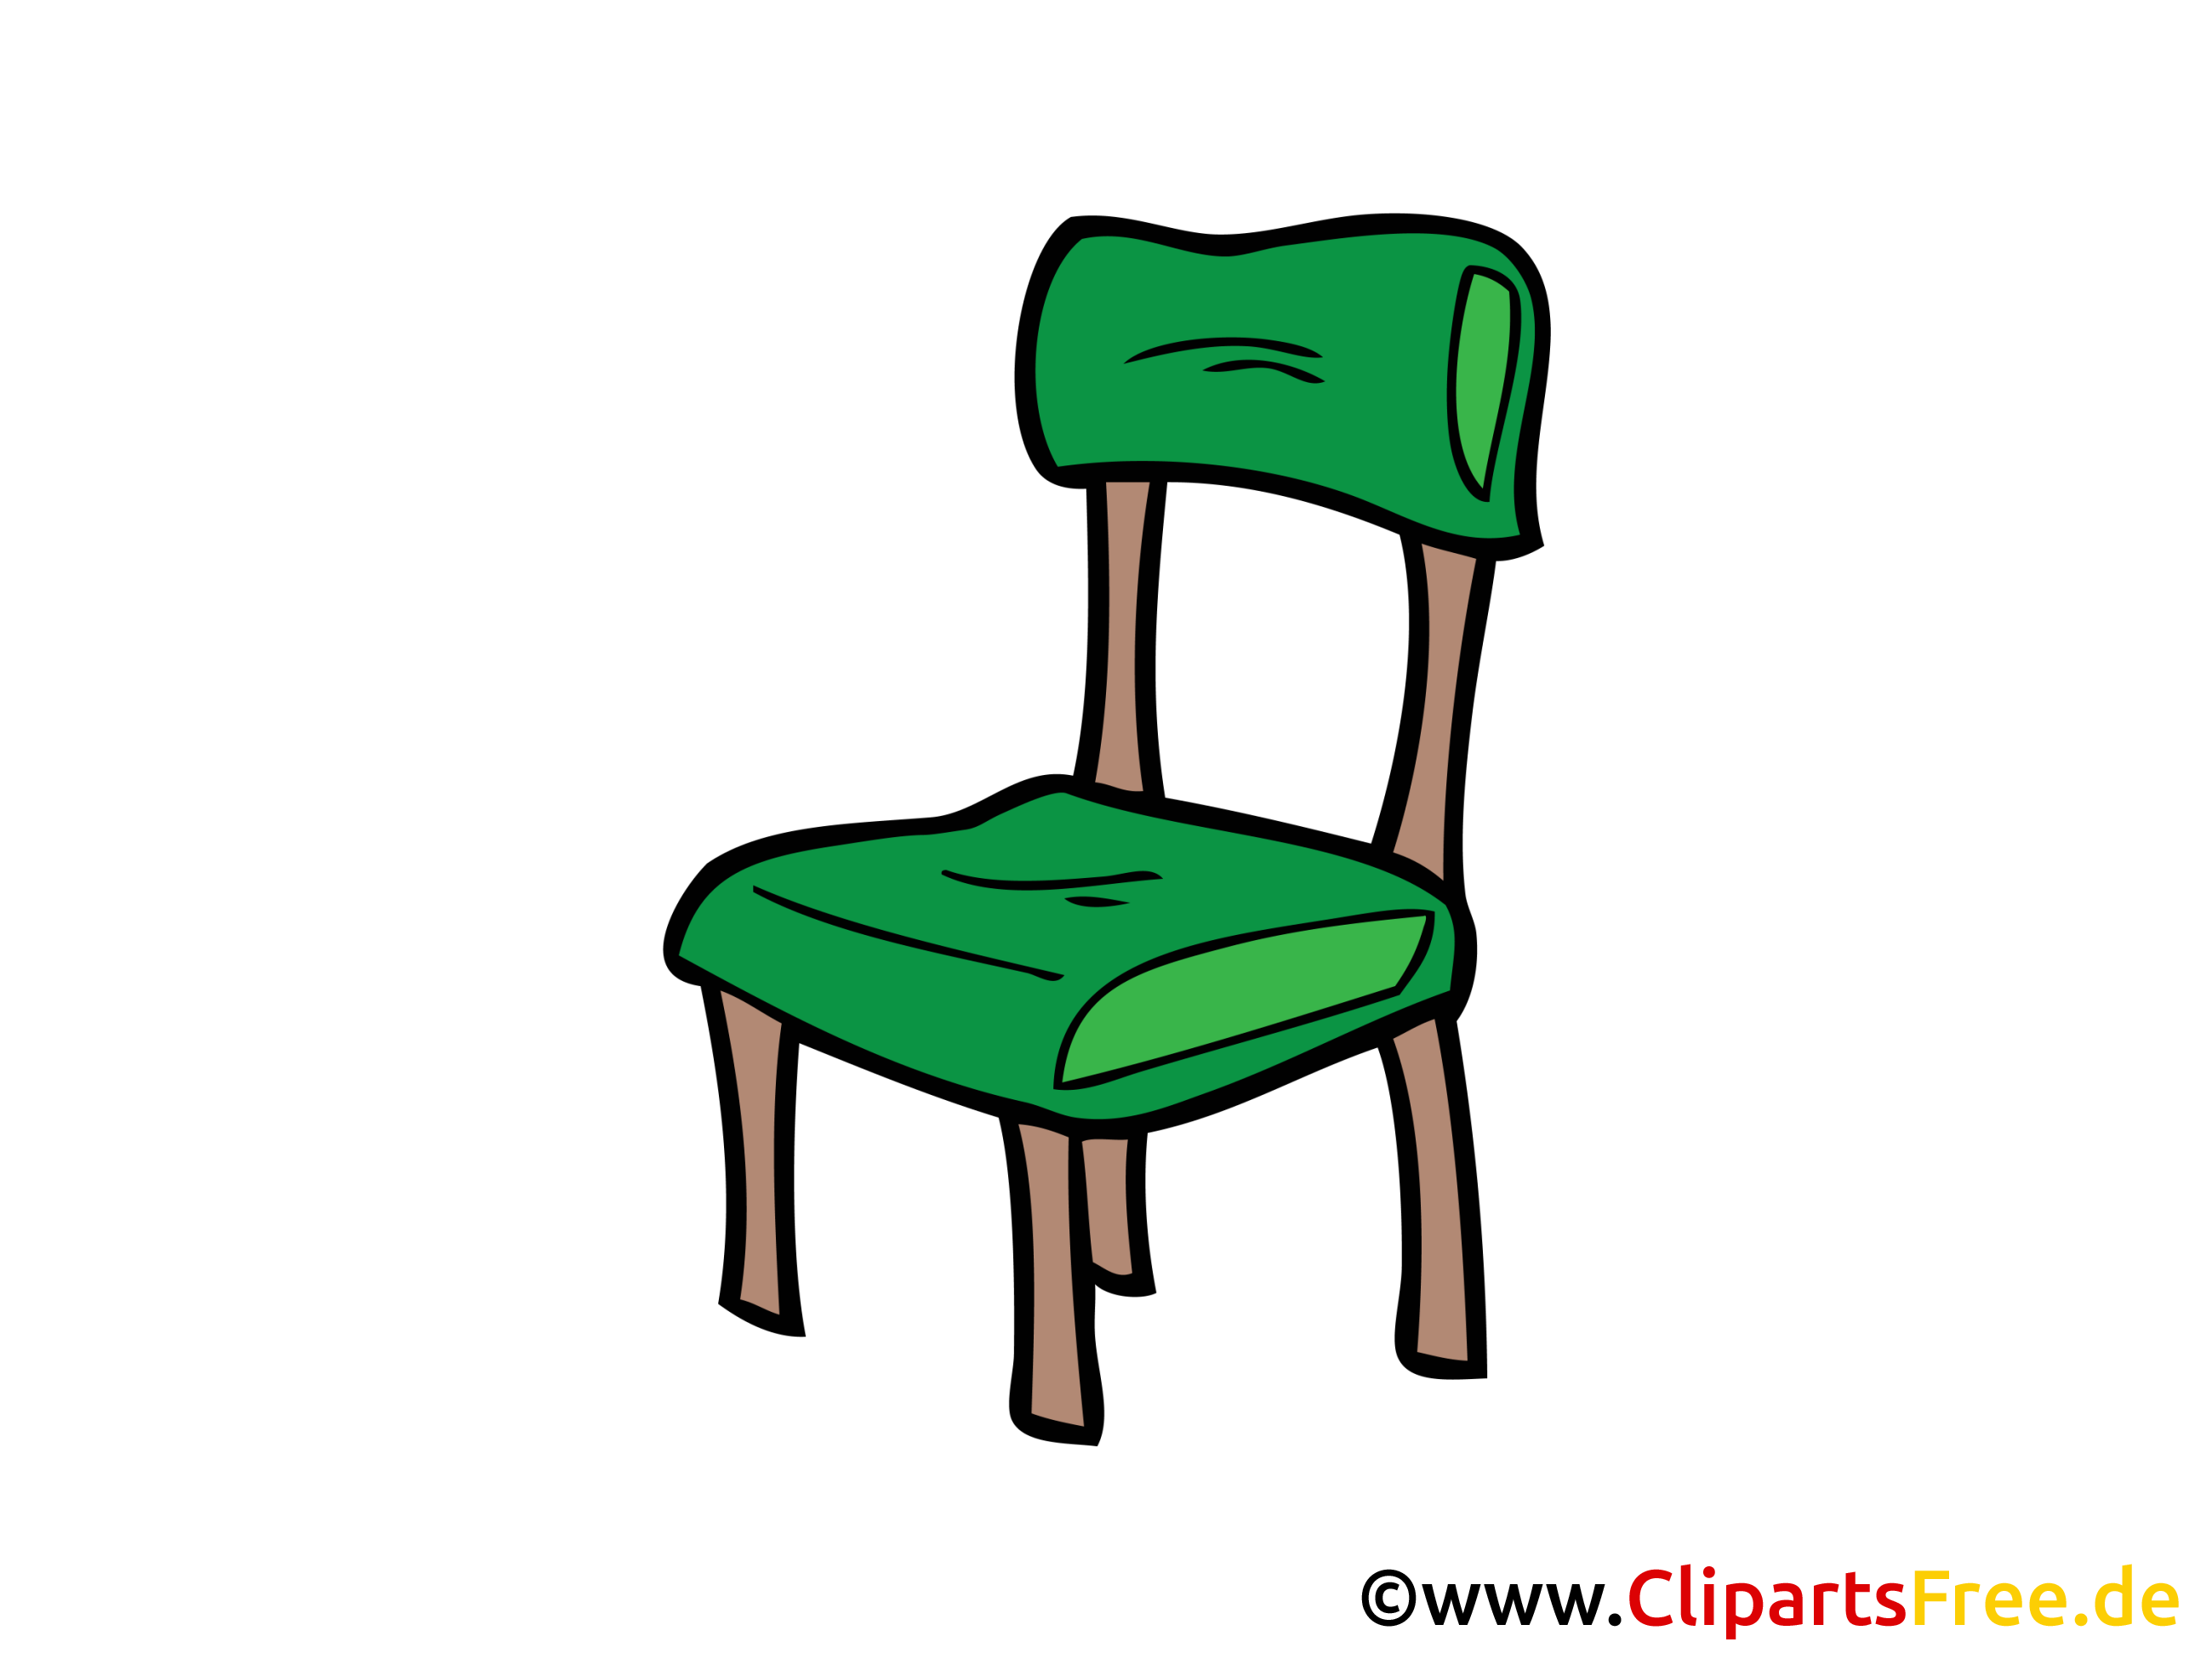 Sessel clipart  Gegenstände Bilder, Cliparts, Cartoons, Grafiken, Illustrationen ...